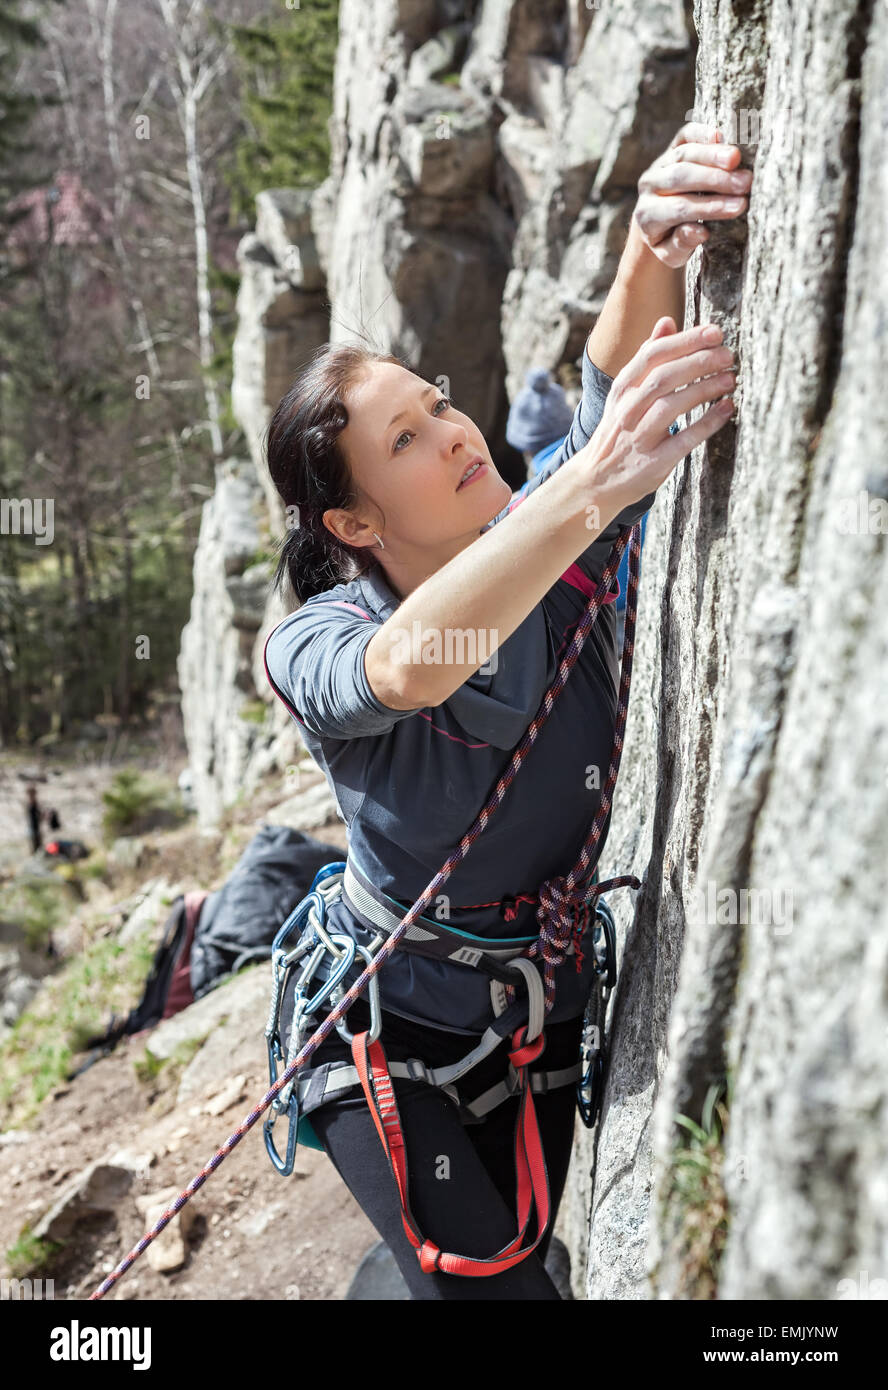 Portrait of a beautiful young woman climbing difficult wall. - Stock Image